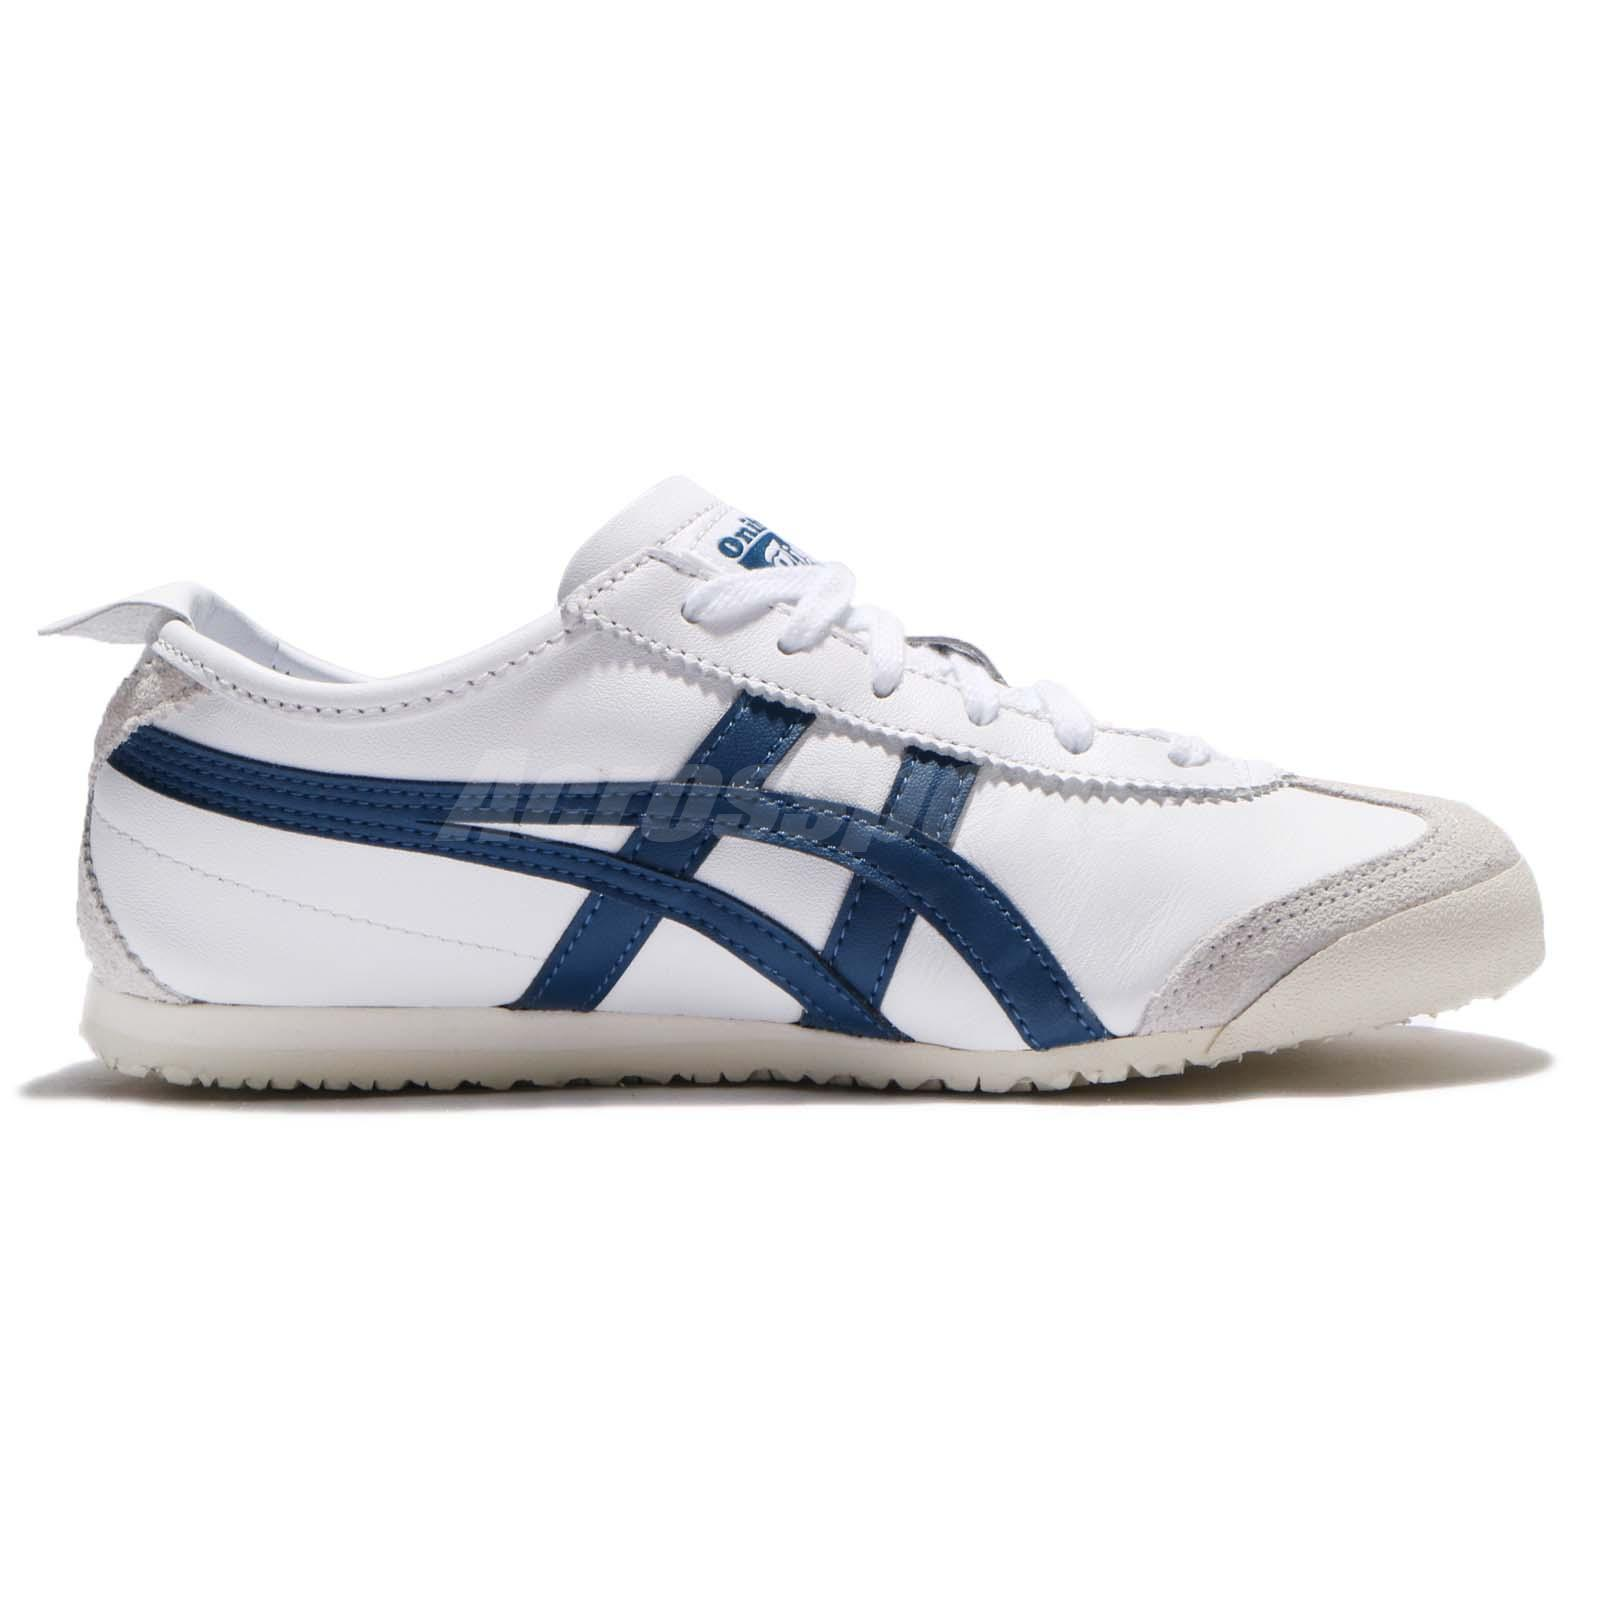 finest selection cae8f 4d5cf ... Condition Brand New With Box 2016 Autumn Authentic Asics Onitsuka Tiger  Mexico 66 White Blue X1T04tBD larger image ...